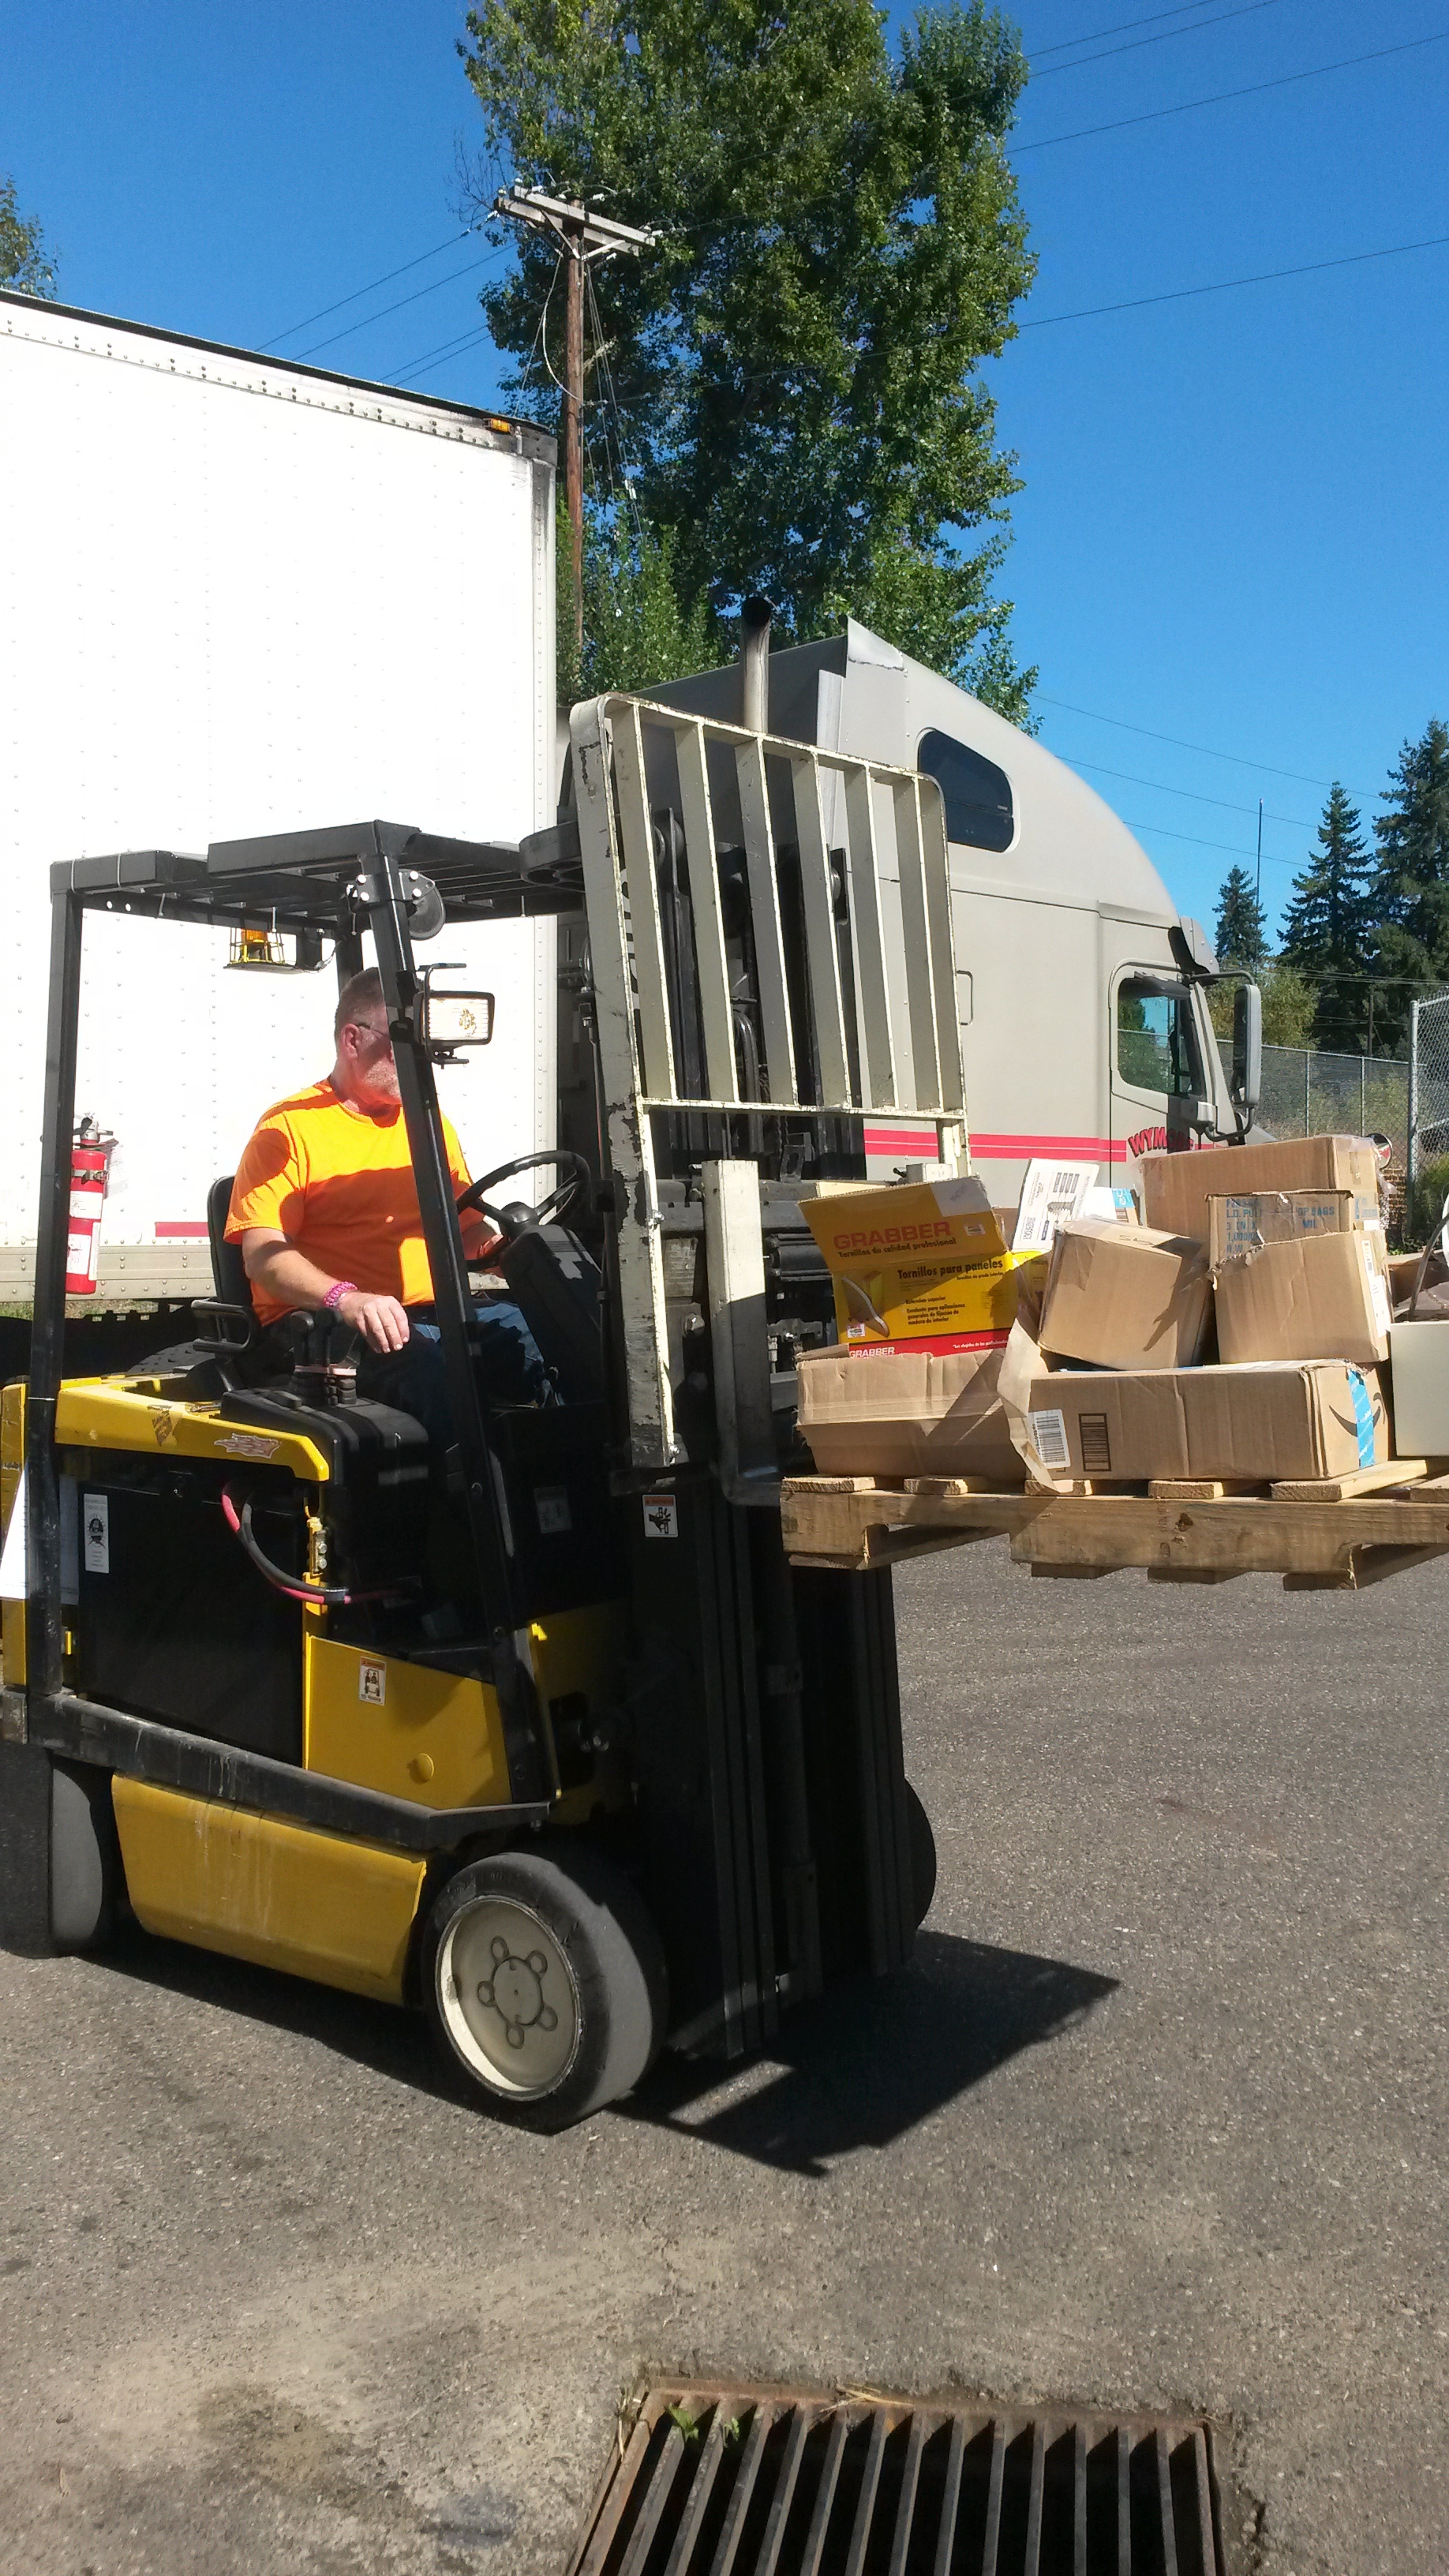 A forklift driver at Exceed moving many random items into the warehouse.